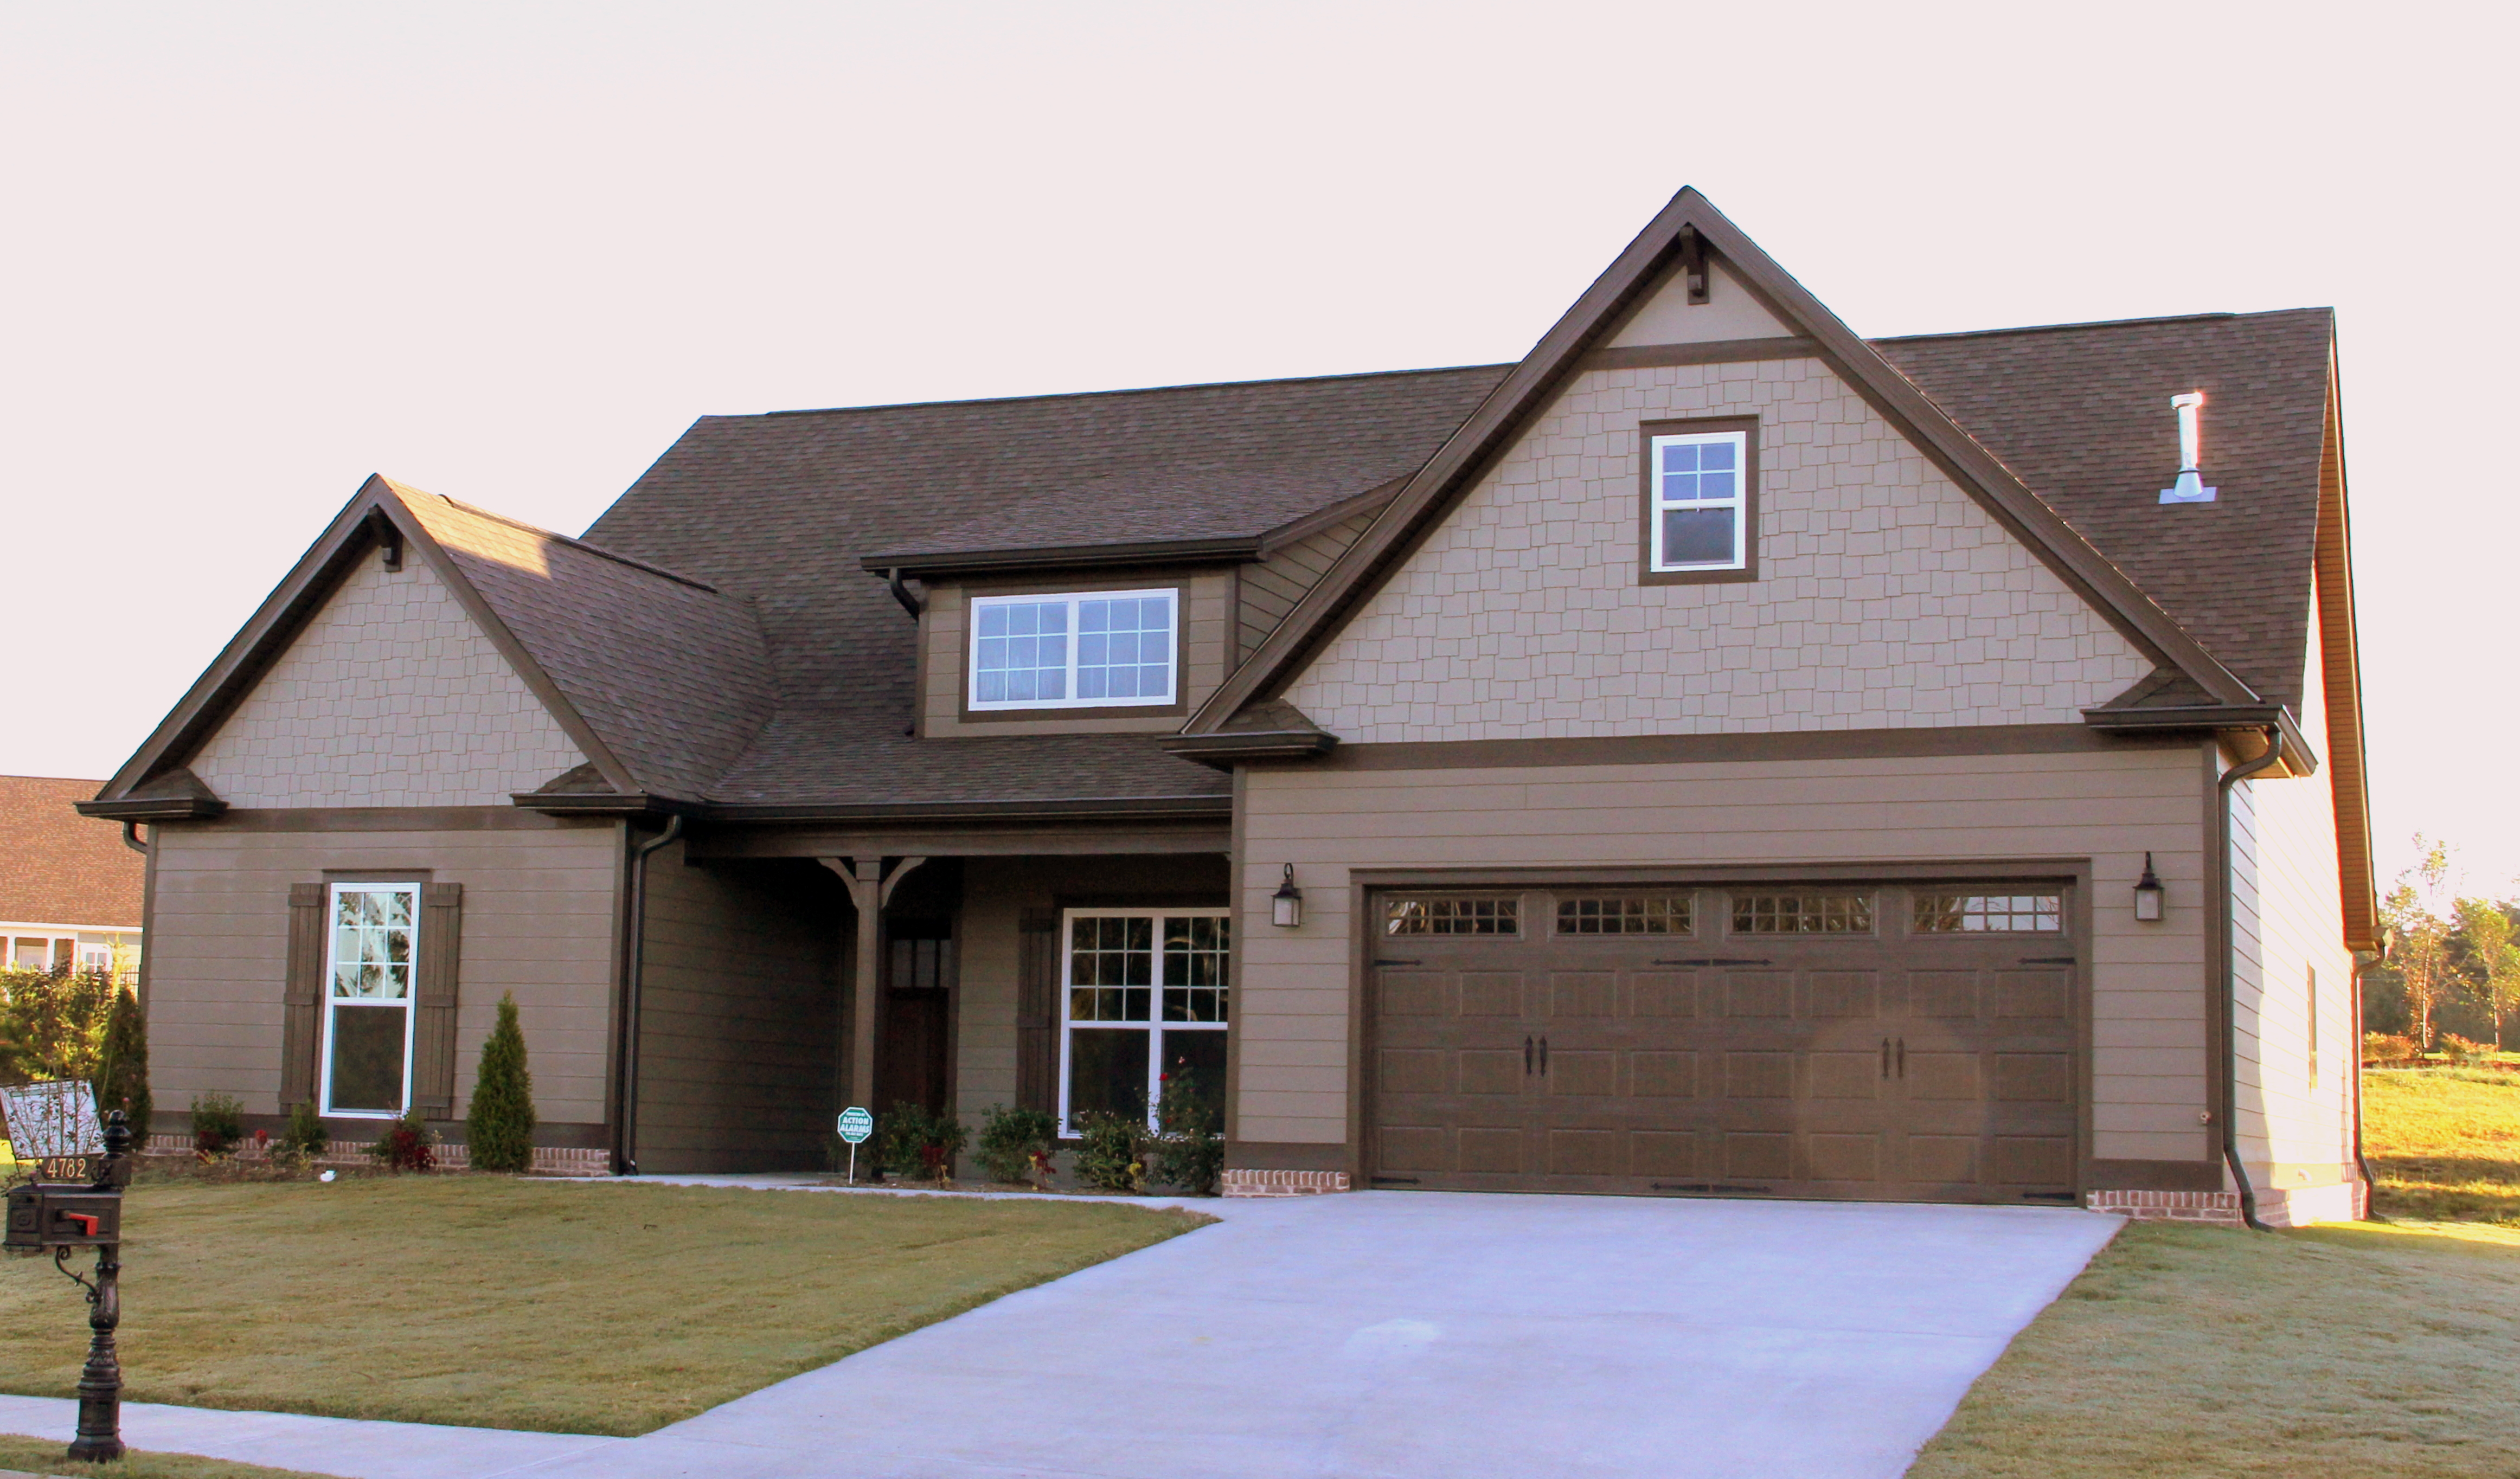 River rock cove new homes in chattanooga tn please visit our team to schedule a tour of this charming neighborhood and browse through a model home like the one pictured below rubansaba